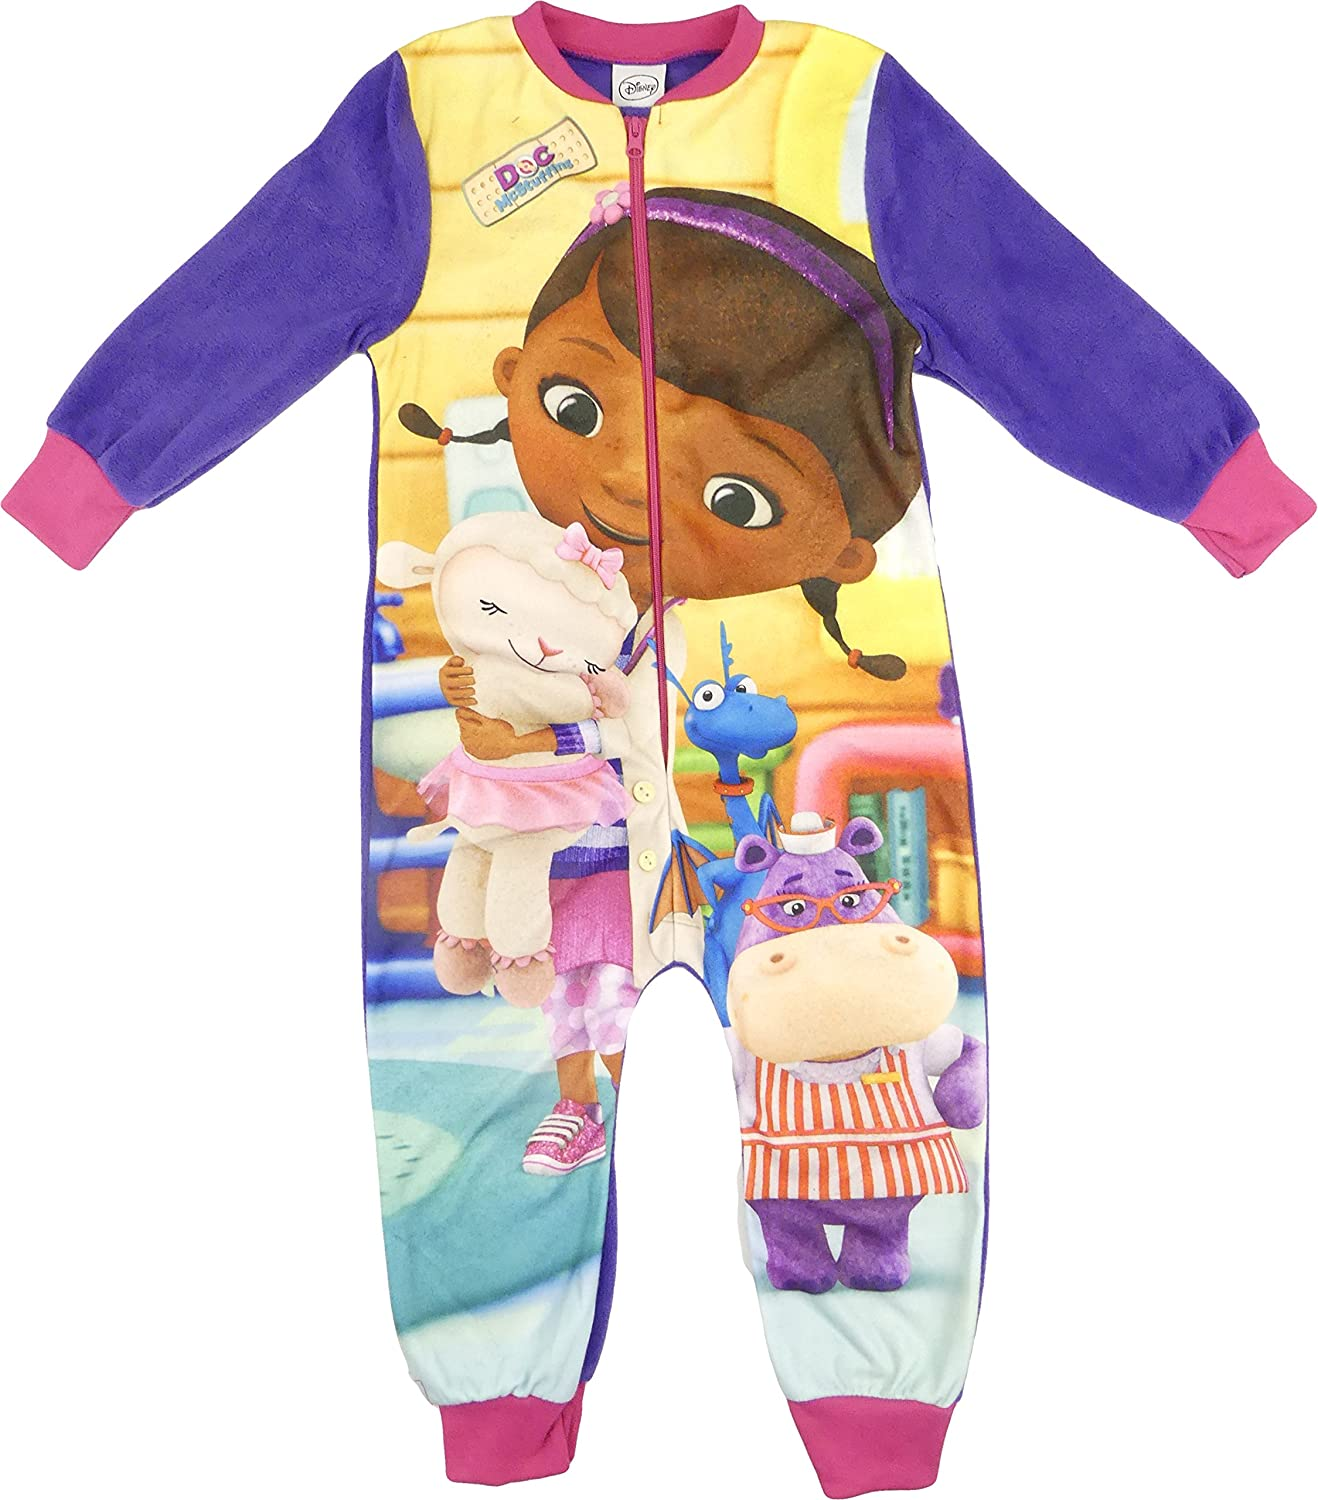 Childrens Character Girls Doc Mcstuffin All In One Pyjama Sleepsuit Nightwear 2-3 4-5 5-6 and 7-8